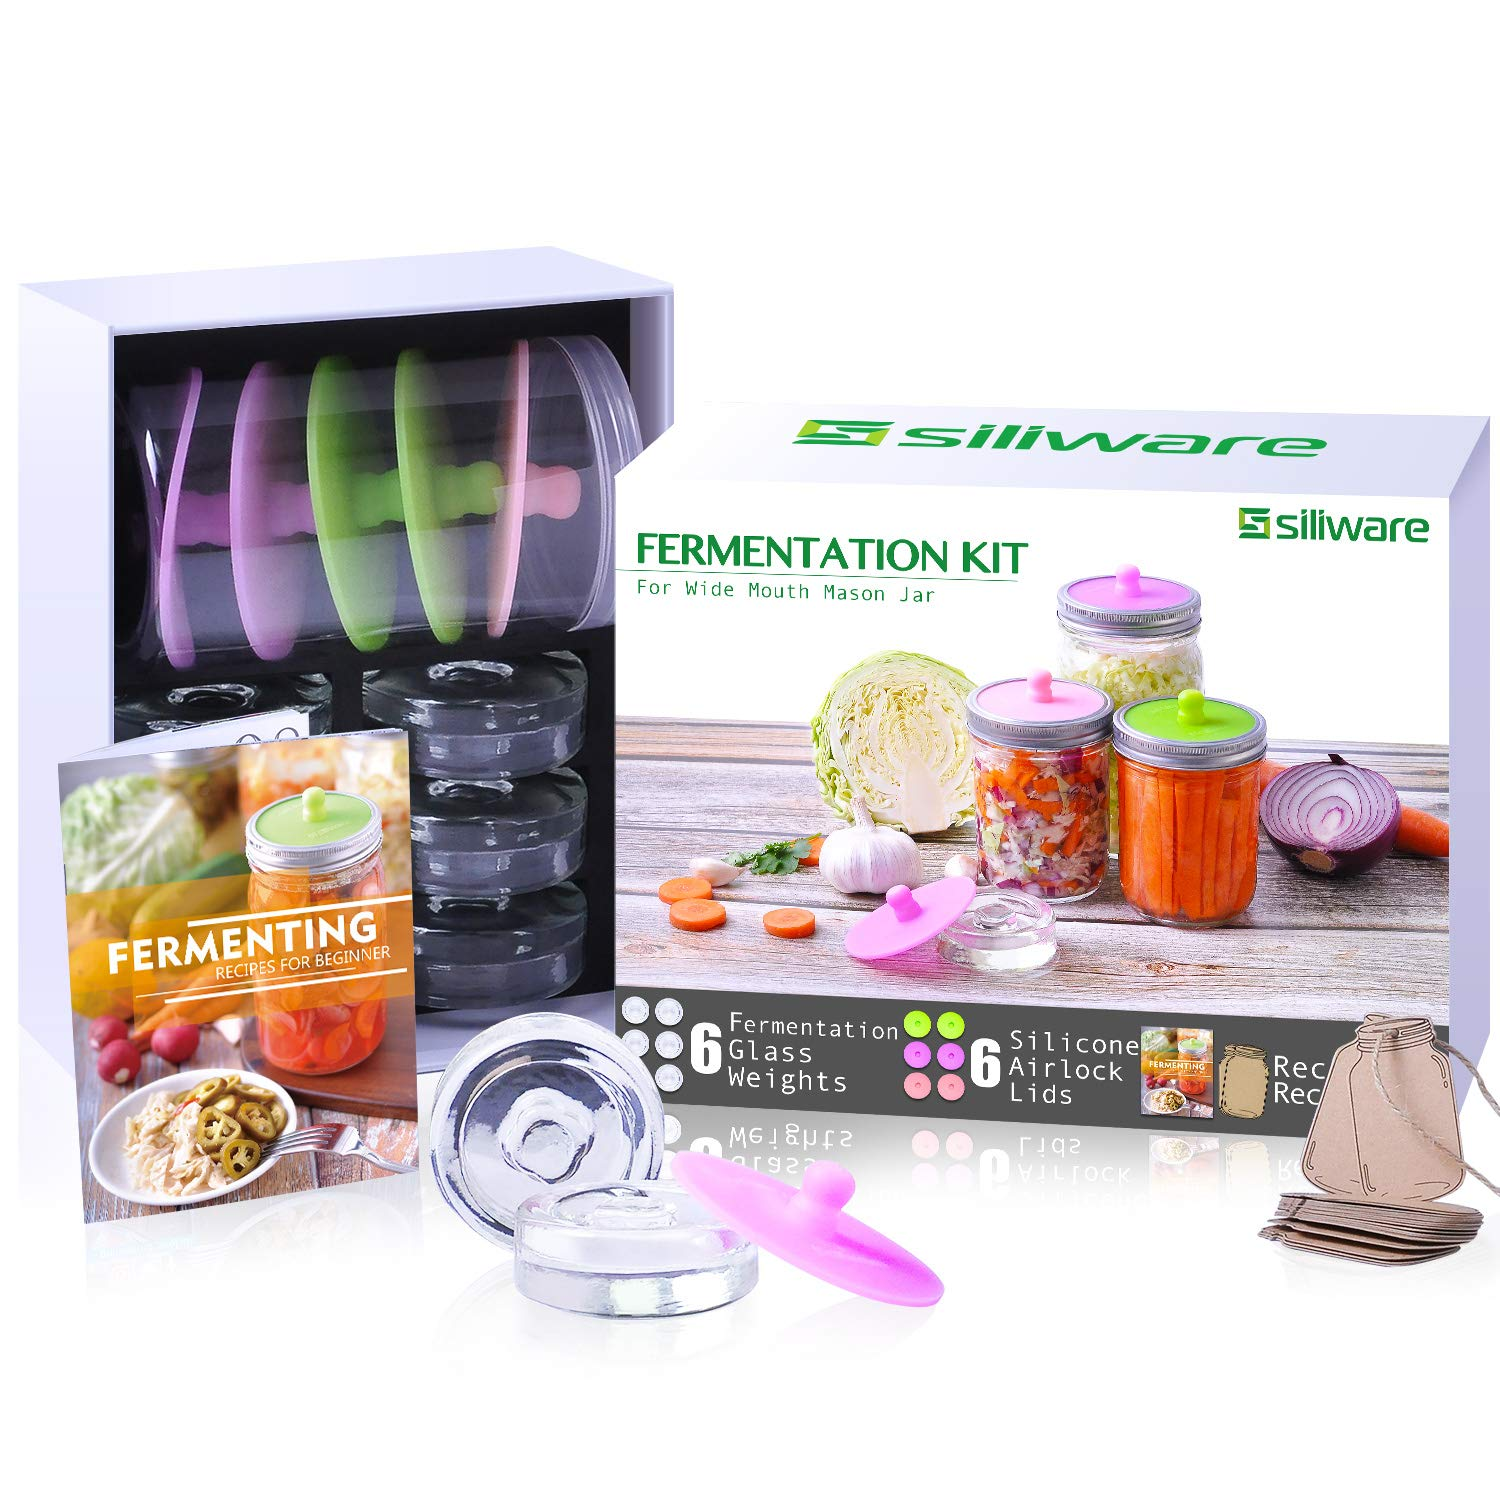 Easy Fermentation Kit for Wide Mouth Mason Jar, Includes 6 Silicone Fermenting Airlock Lids, 6 Glass Fermentation Weights, and Record Tags by siliware